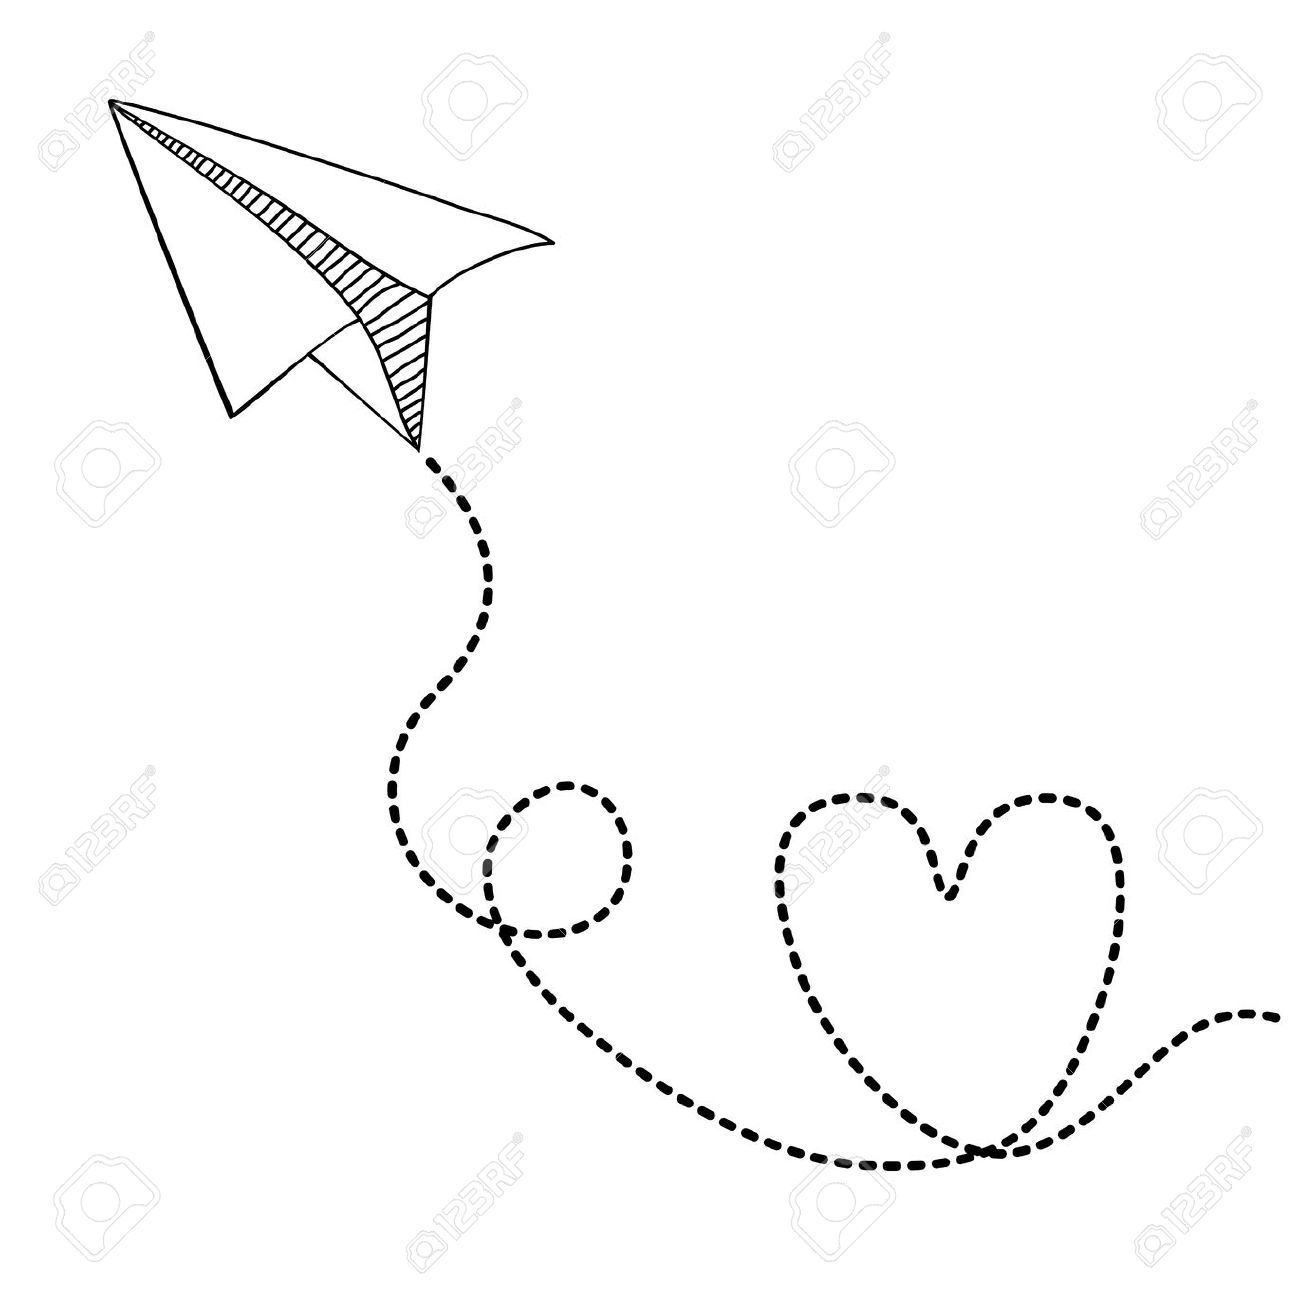 1300x1300 Paper Plane Drawing Tumblr Paper Airplanes Drawings Paper